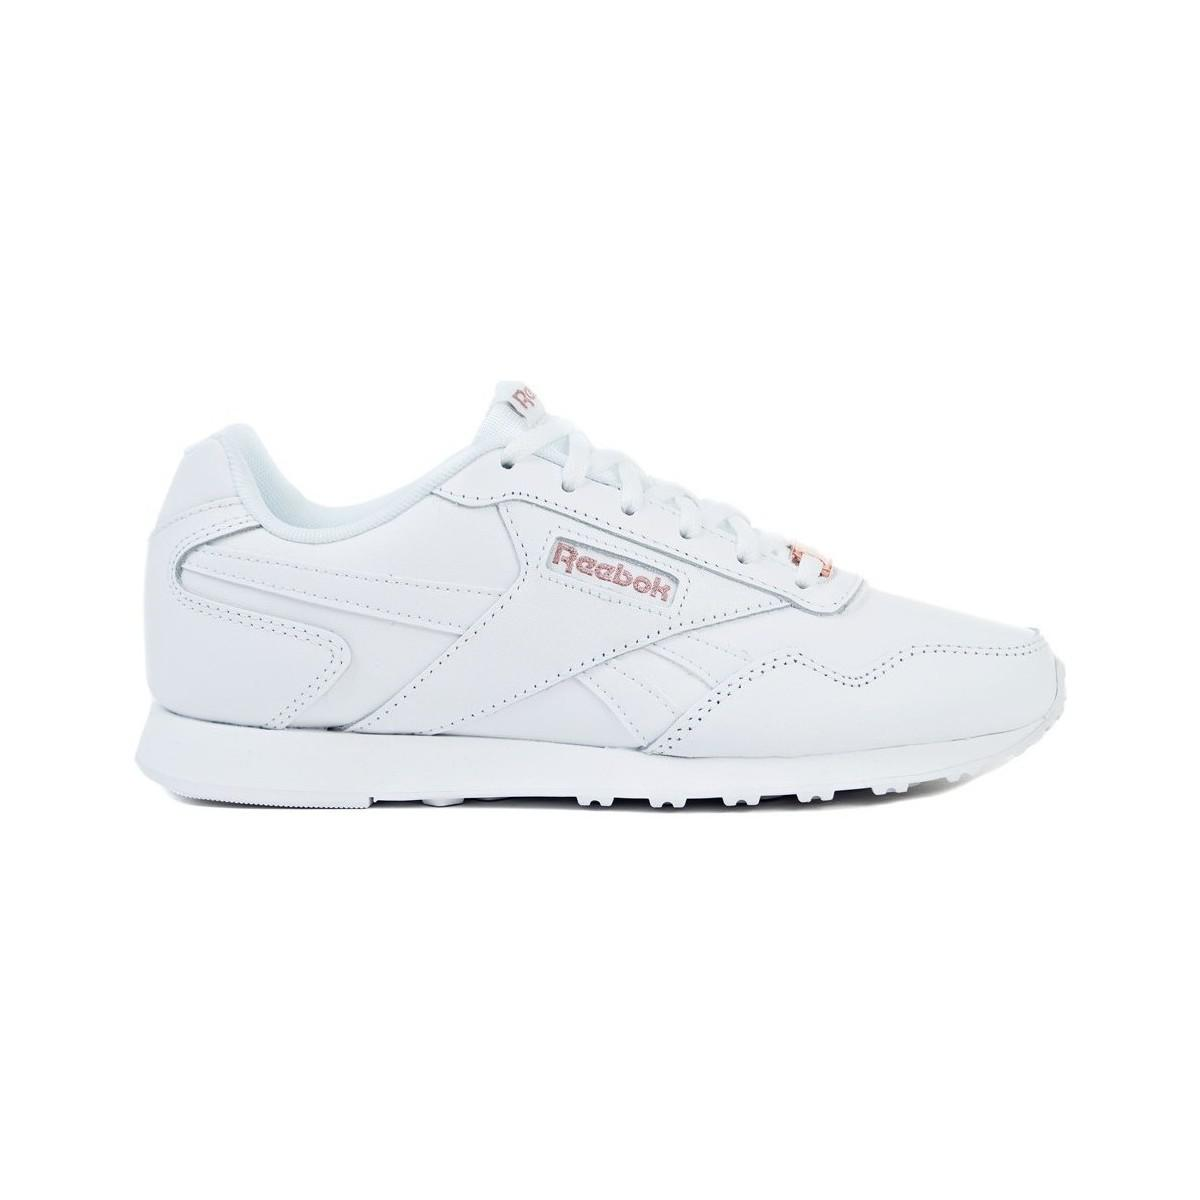 3bd35e6bd74 Reebok Royal Glide Lx Women s Shoes (trainers) In White in White - Lyst